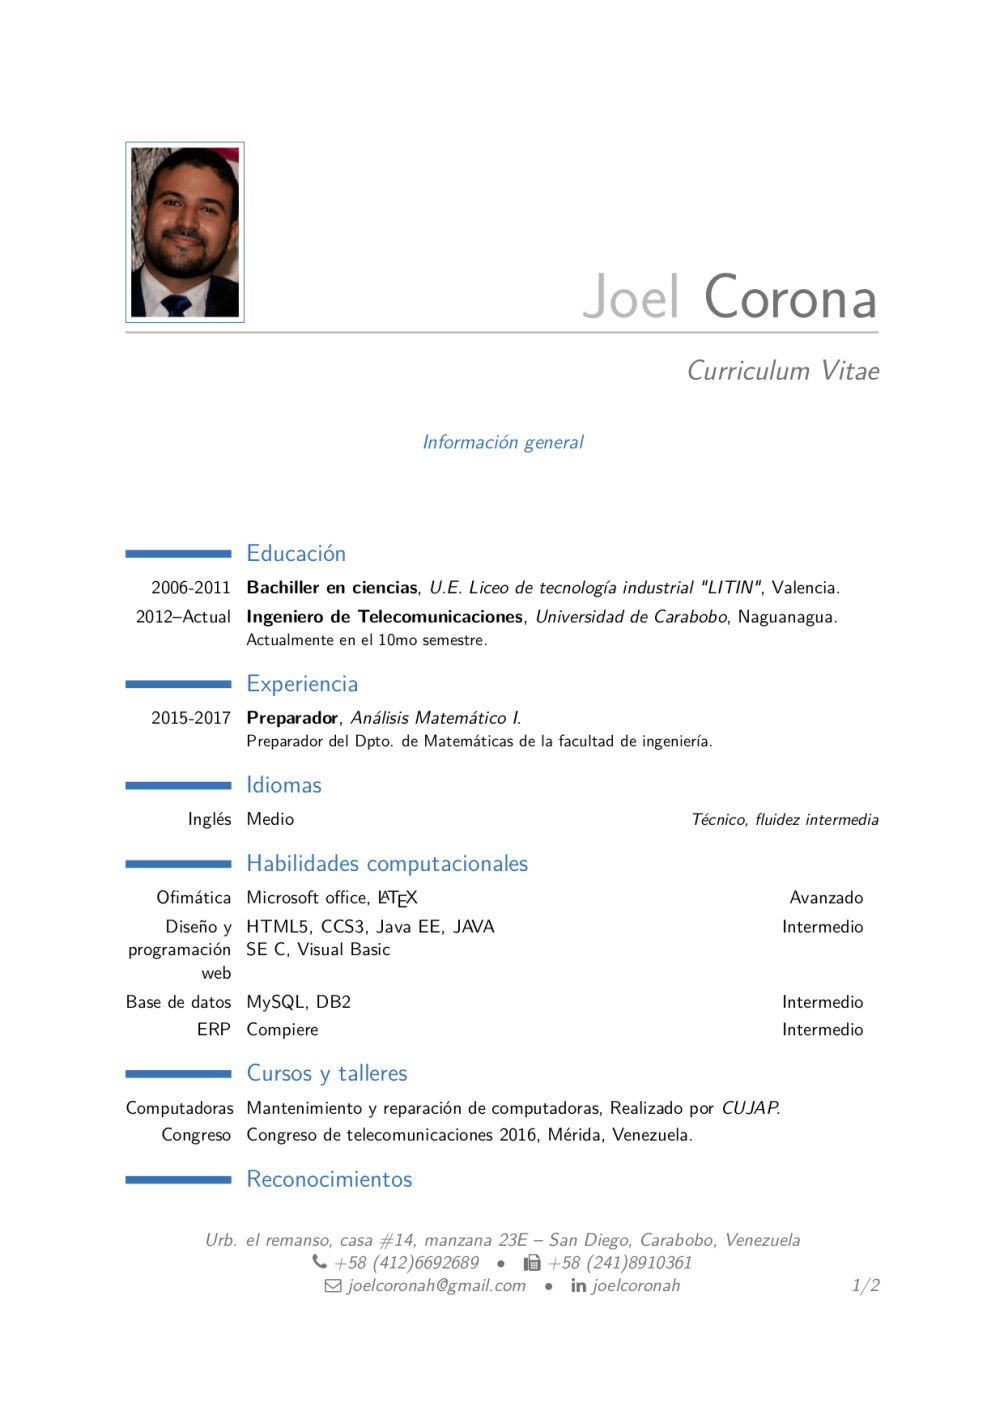 Write scientific documents and curriculum vitae by Joelcoronah